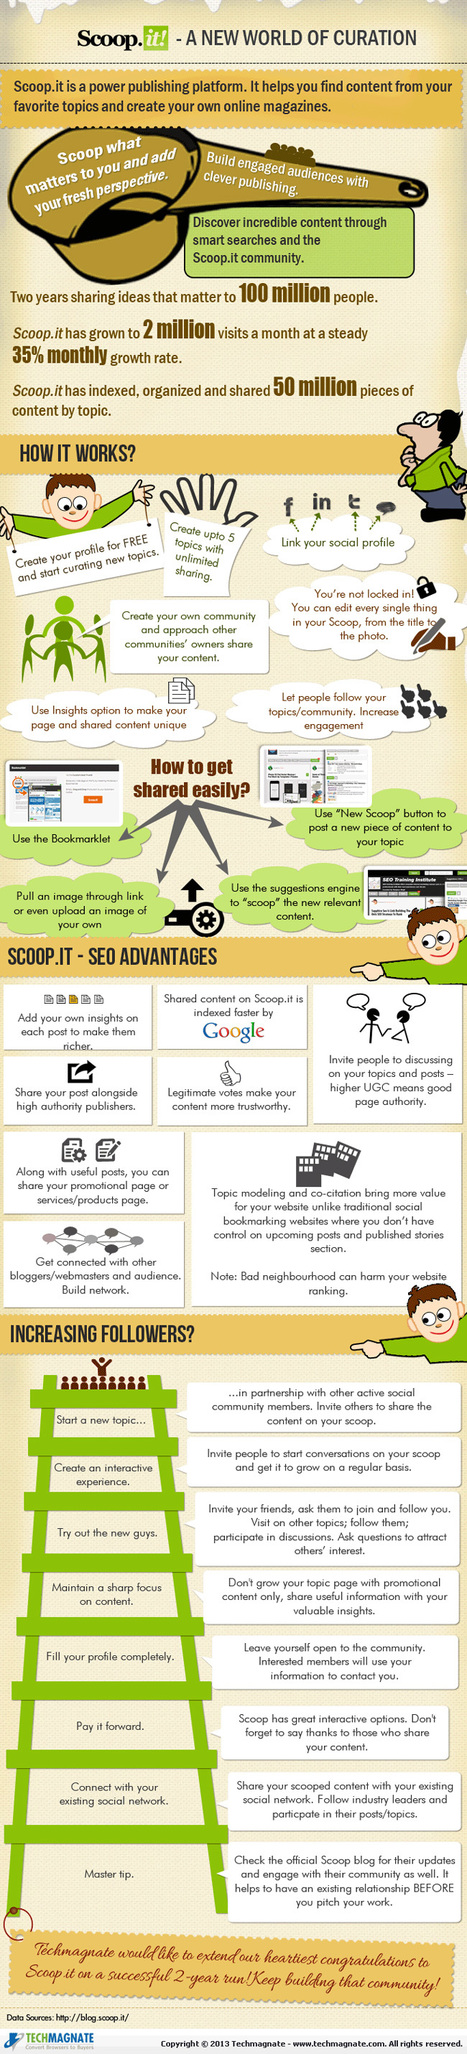 Scoop.It for SEO – A New World of Curation [Infographic] | The Social Network Times | Scoop.it